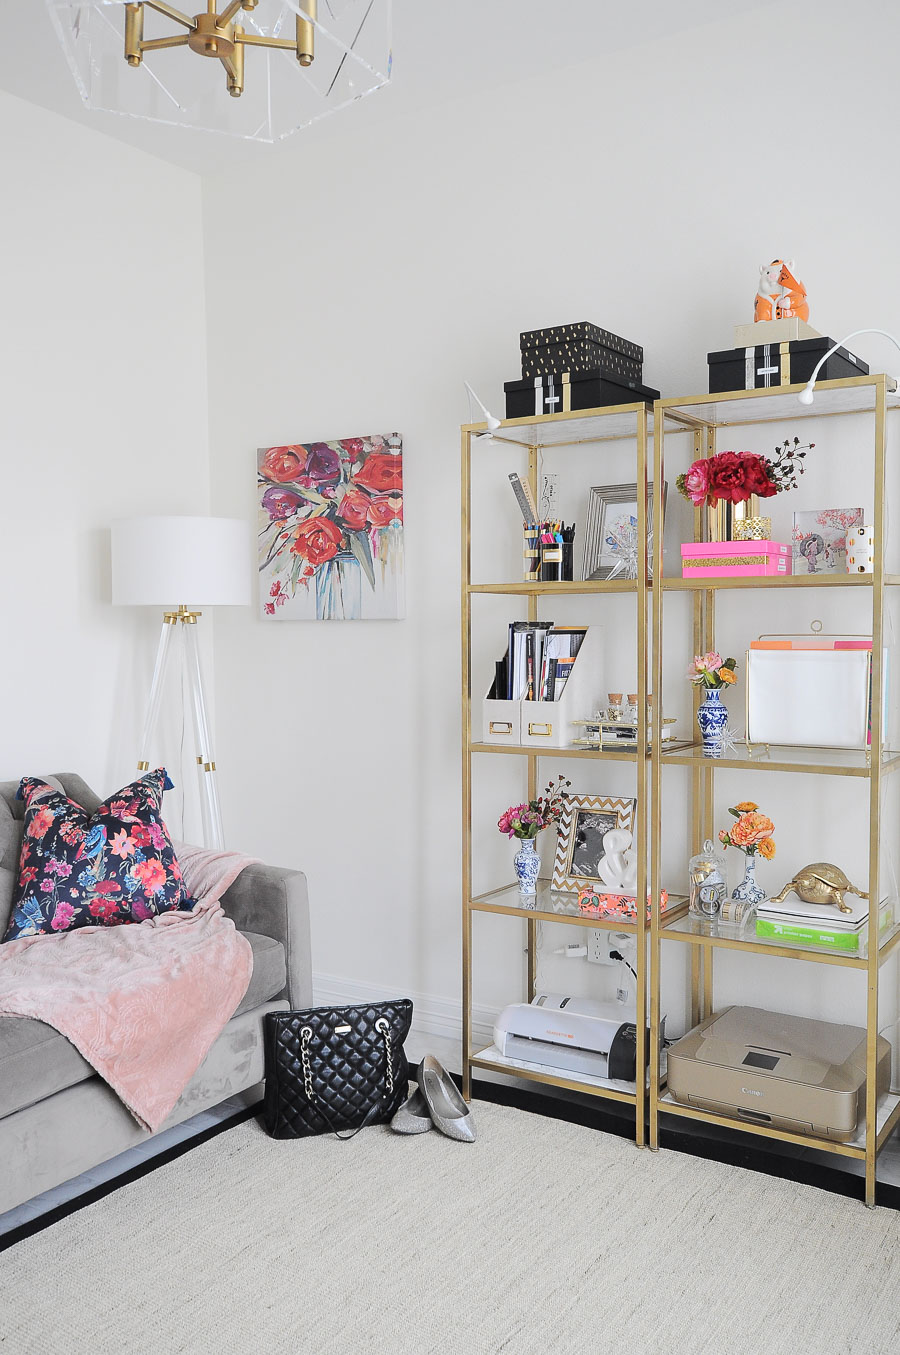 Stylish VITTSJOS spray painted gold hold decor and craft supplies in this bright white and floral home office space.